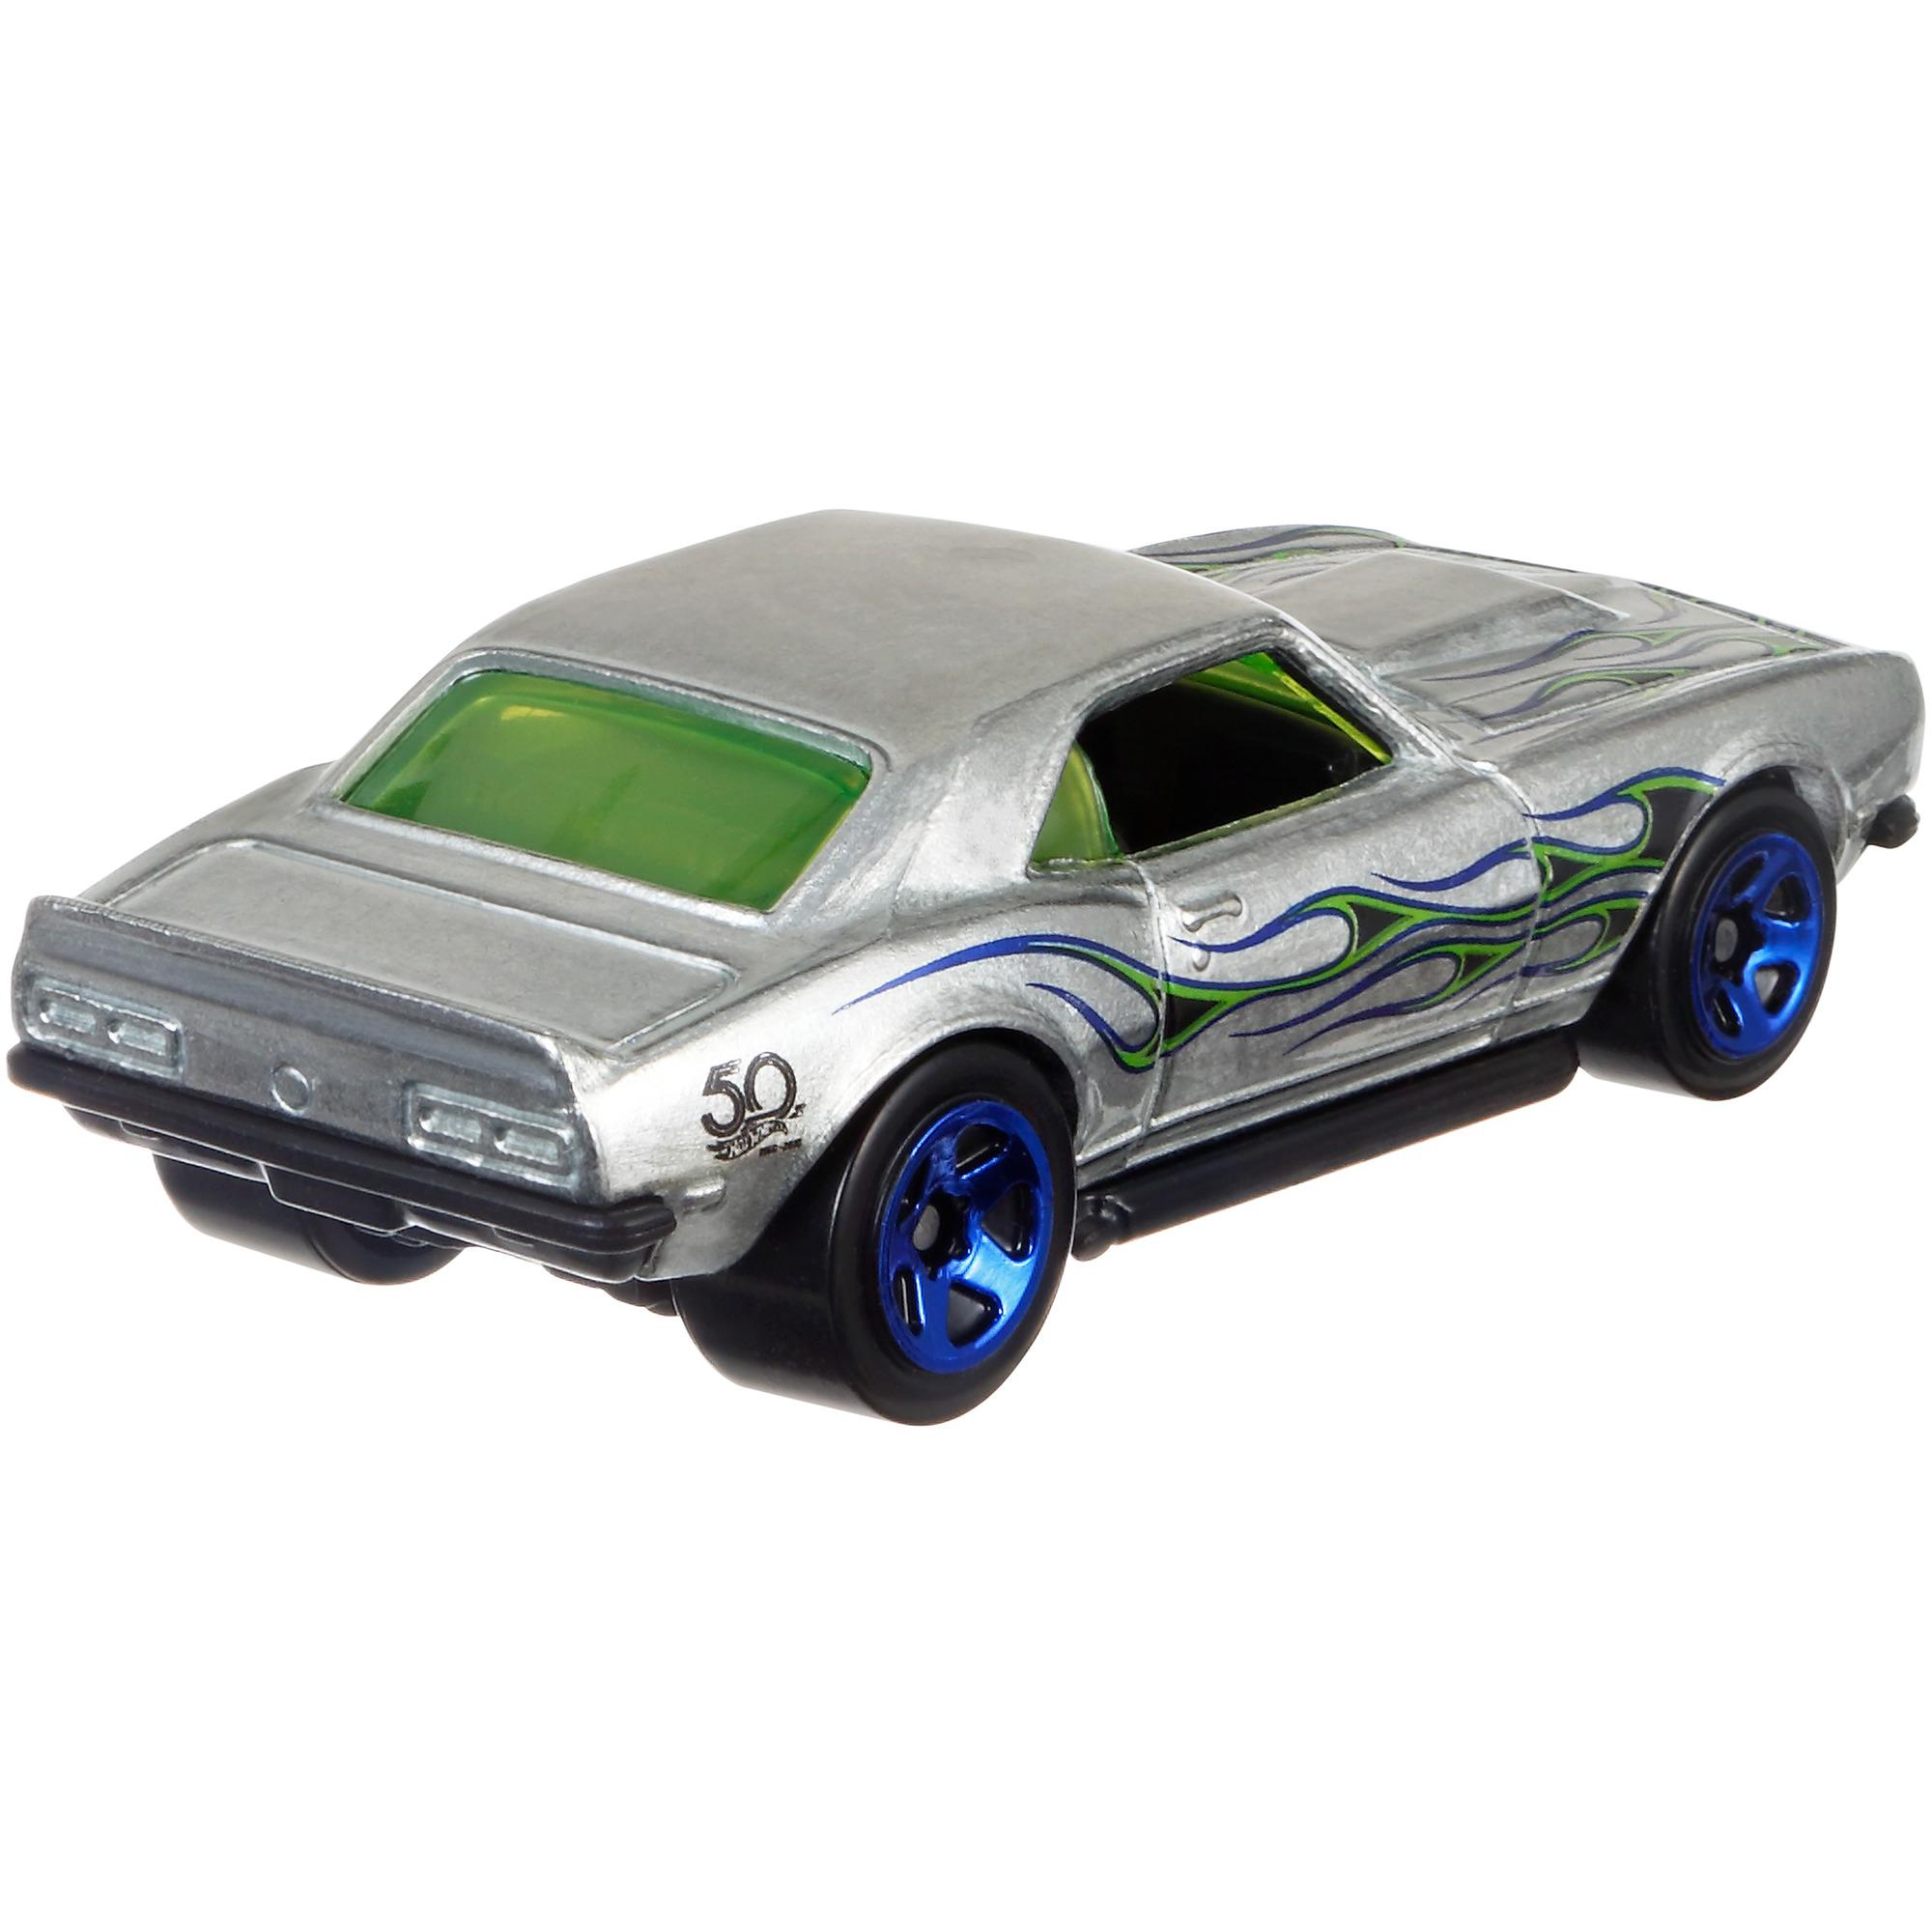 Hot Wheels 50th Anniversary Die-cast Vehicles (Styles May Vary)